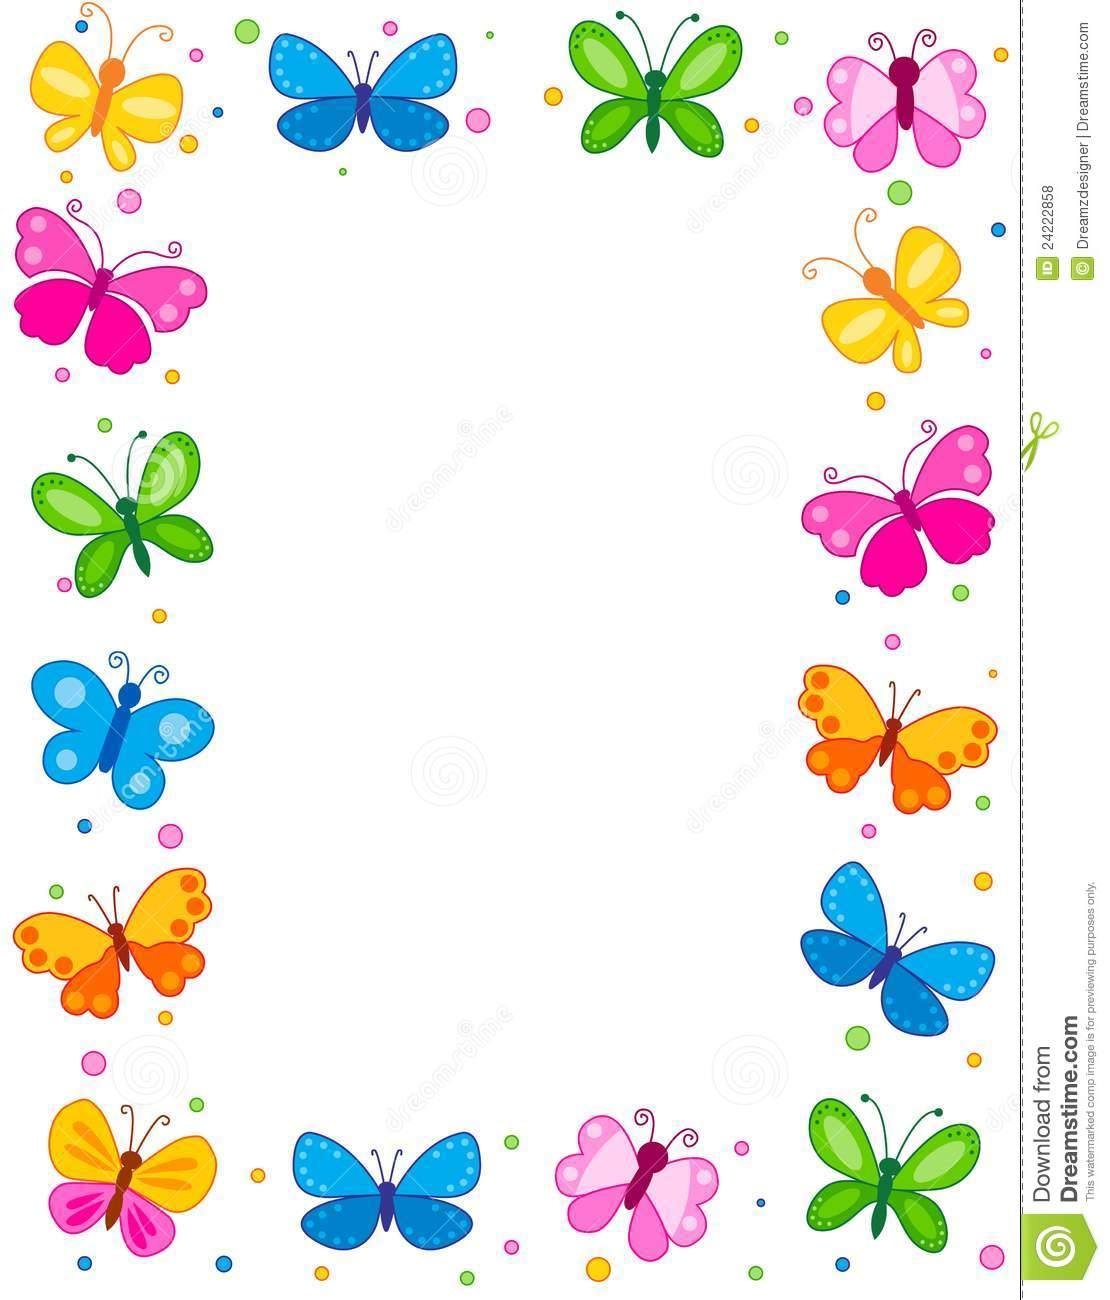 butterfly border royalty free stock photos image 24222858